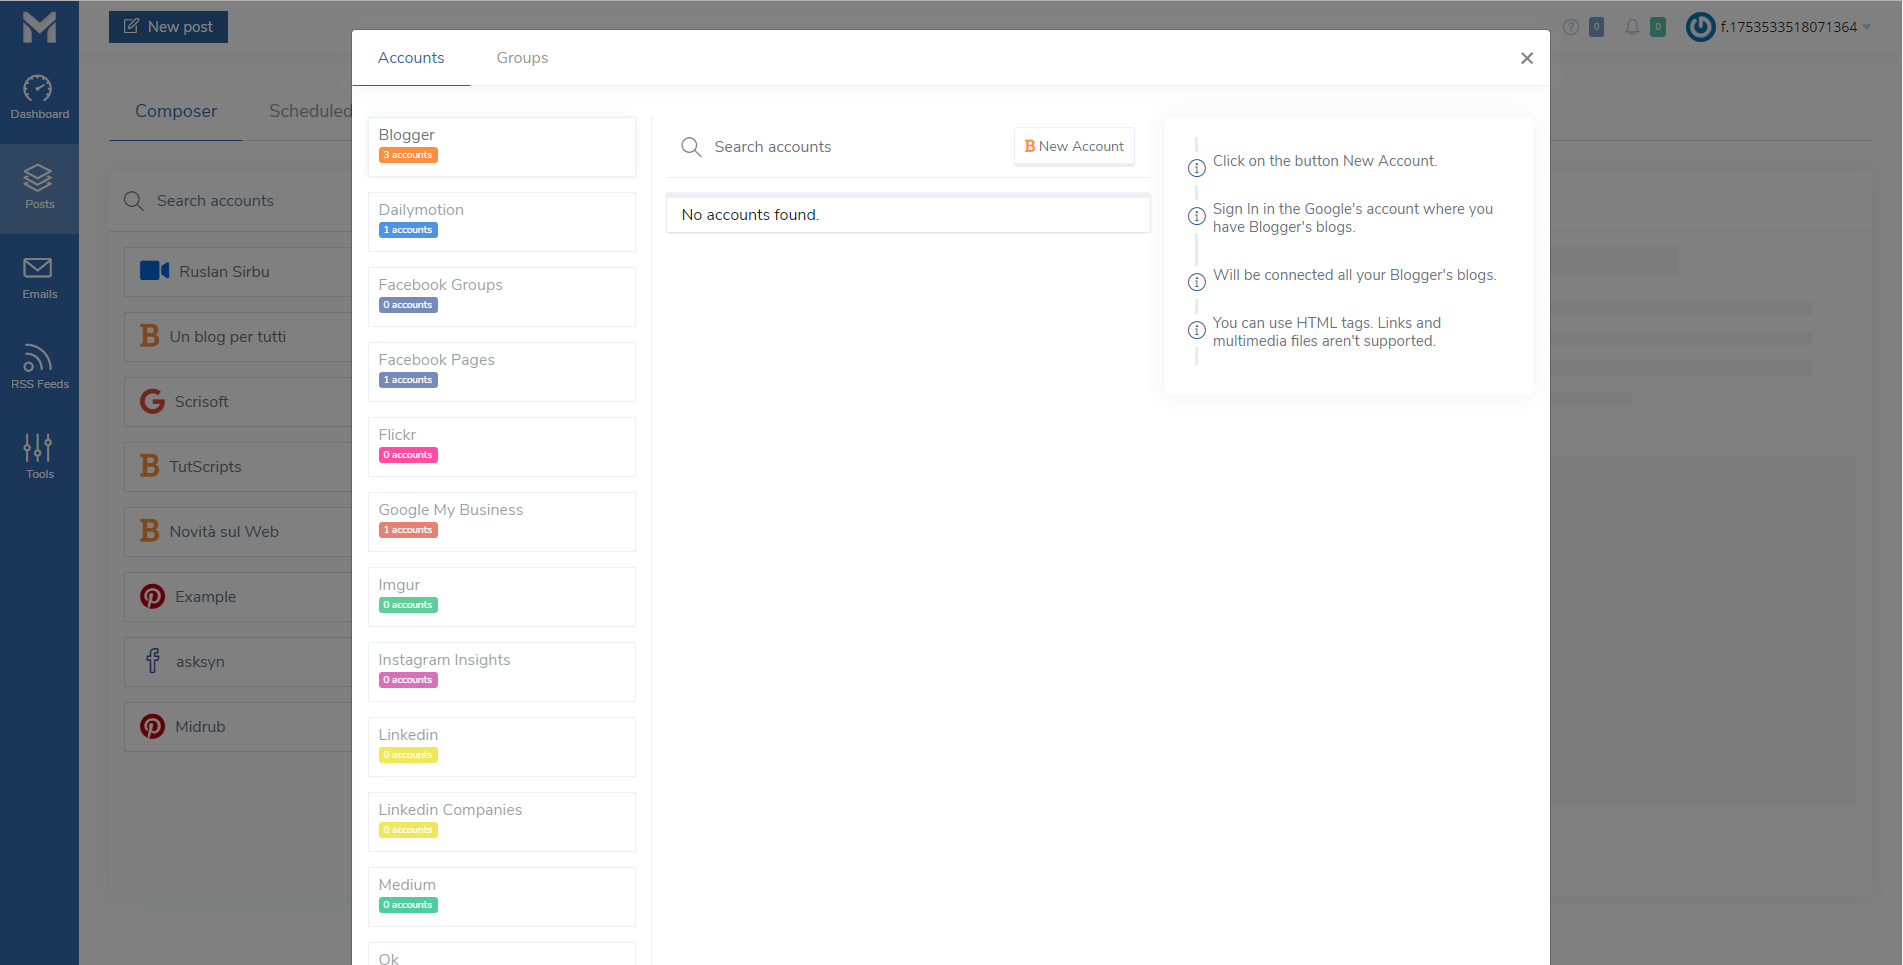 Midrub - schedule and publish on the most popular social networks